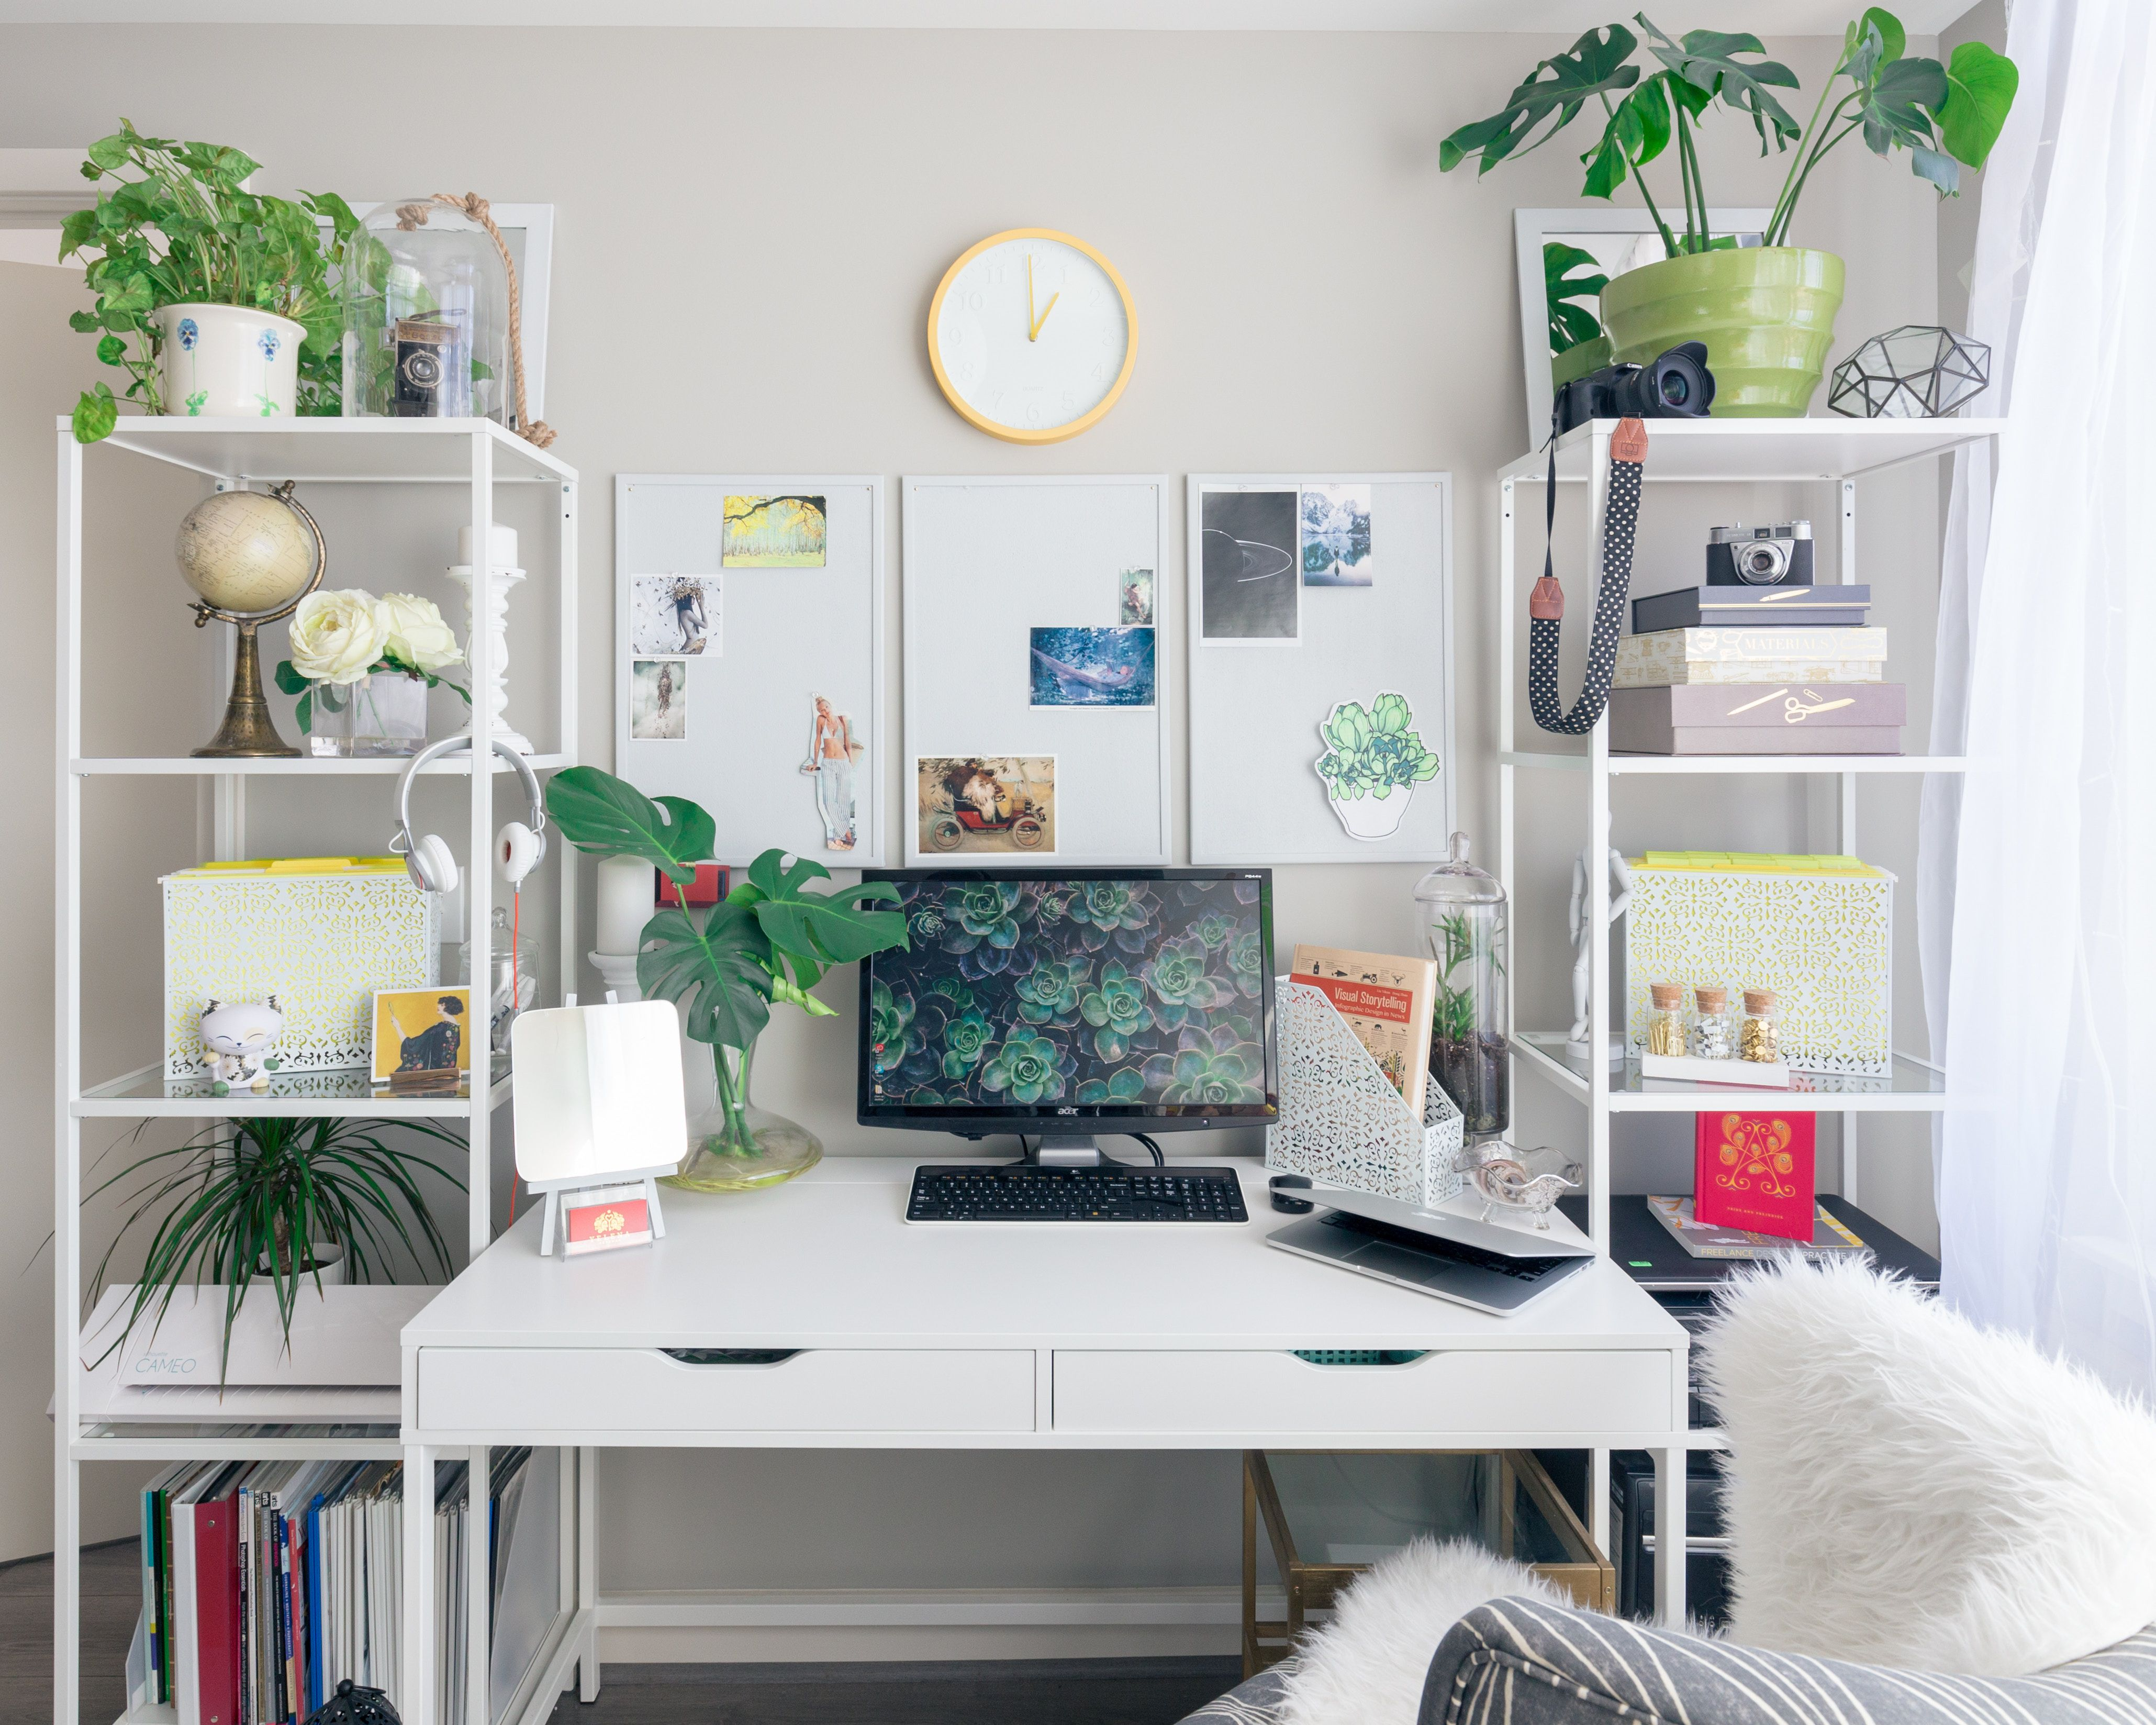 Desk with accessories and objects scattered around it and next to it on shelves